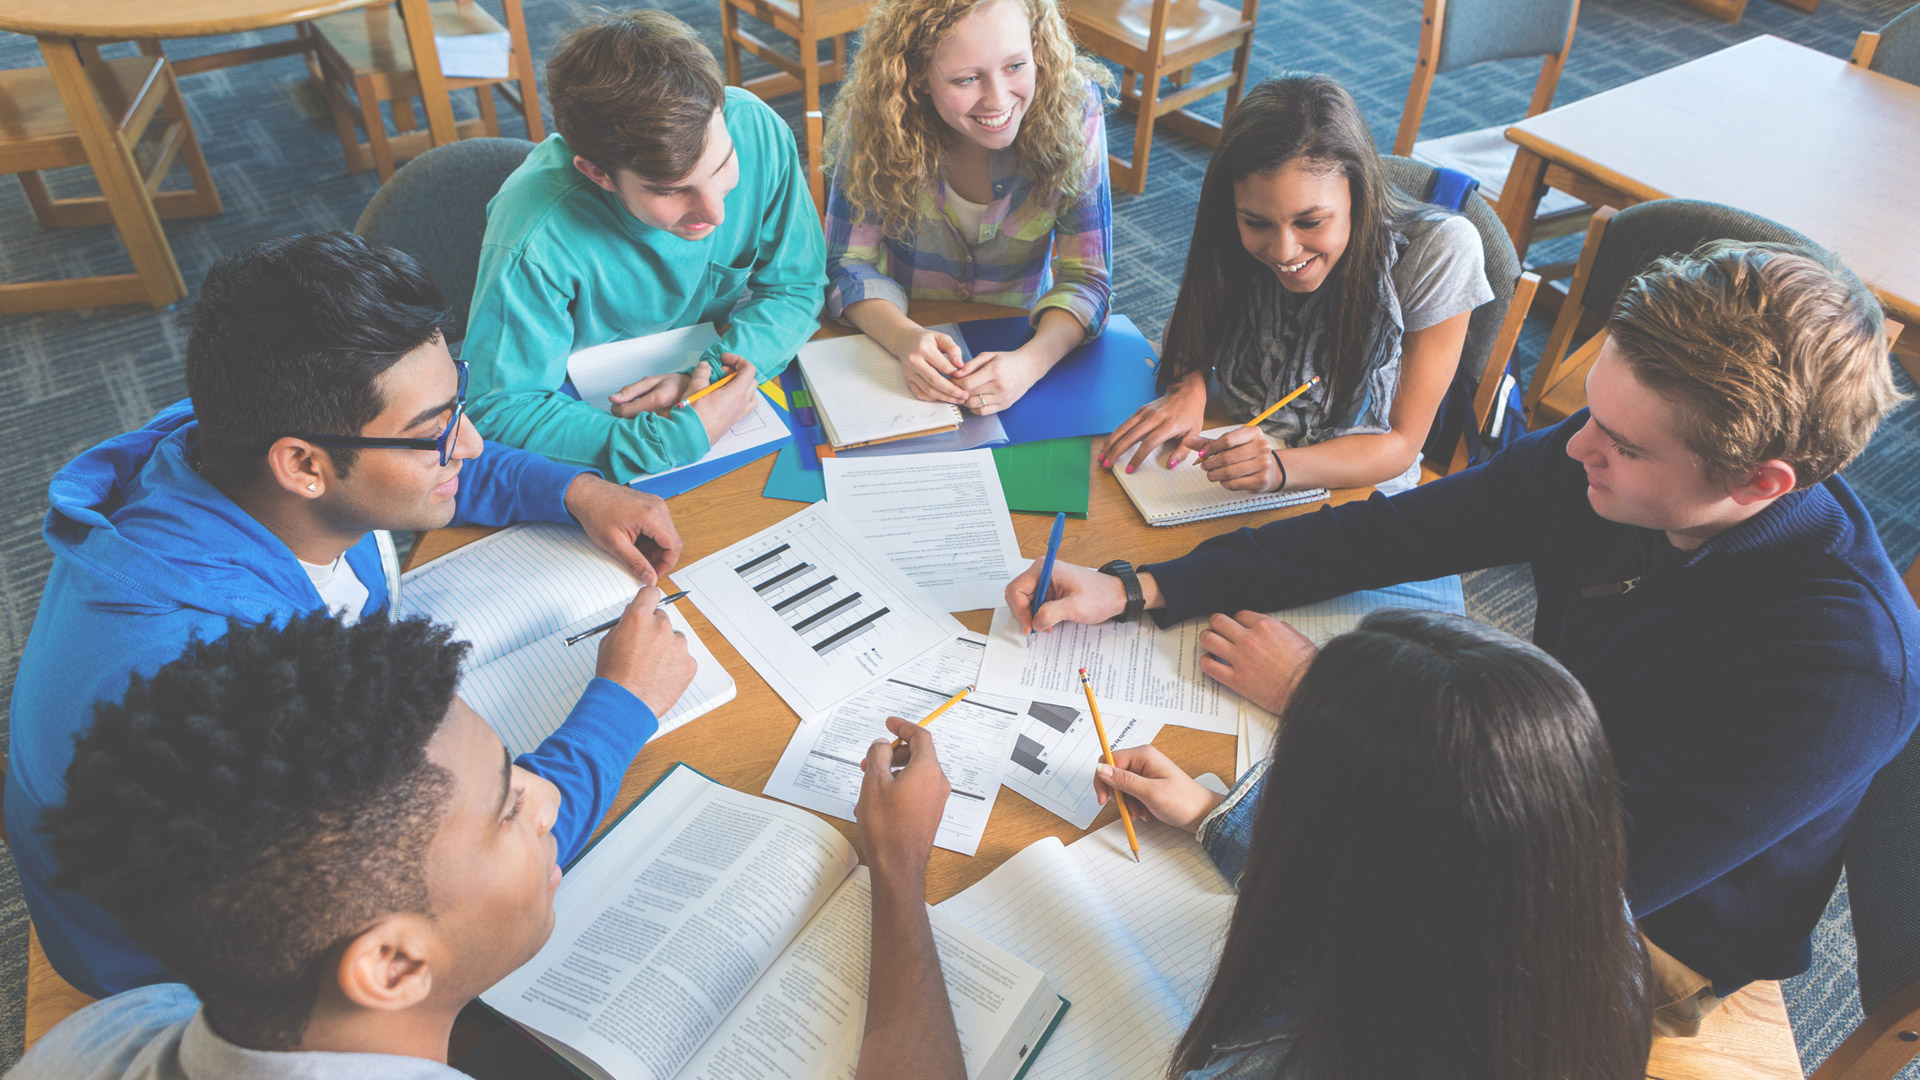 How to write a reflective report on Group work